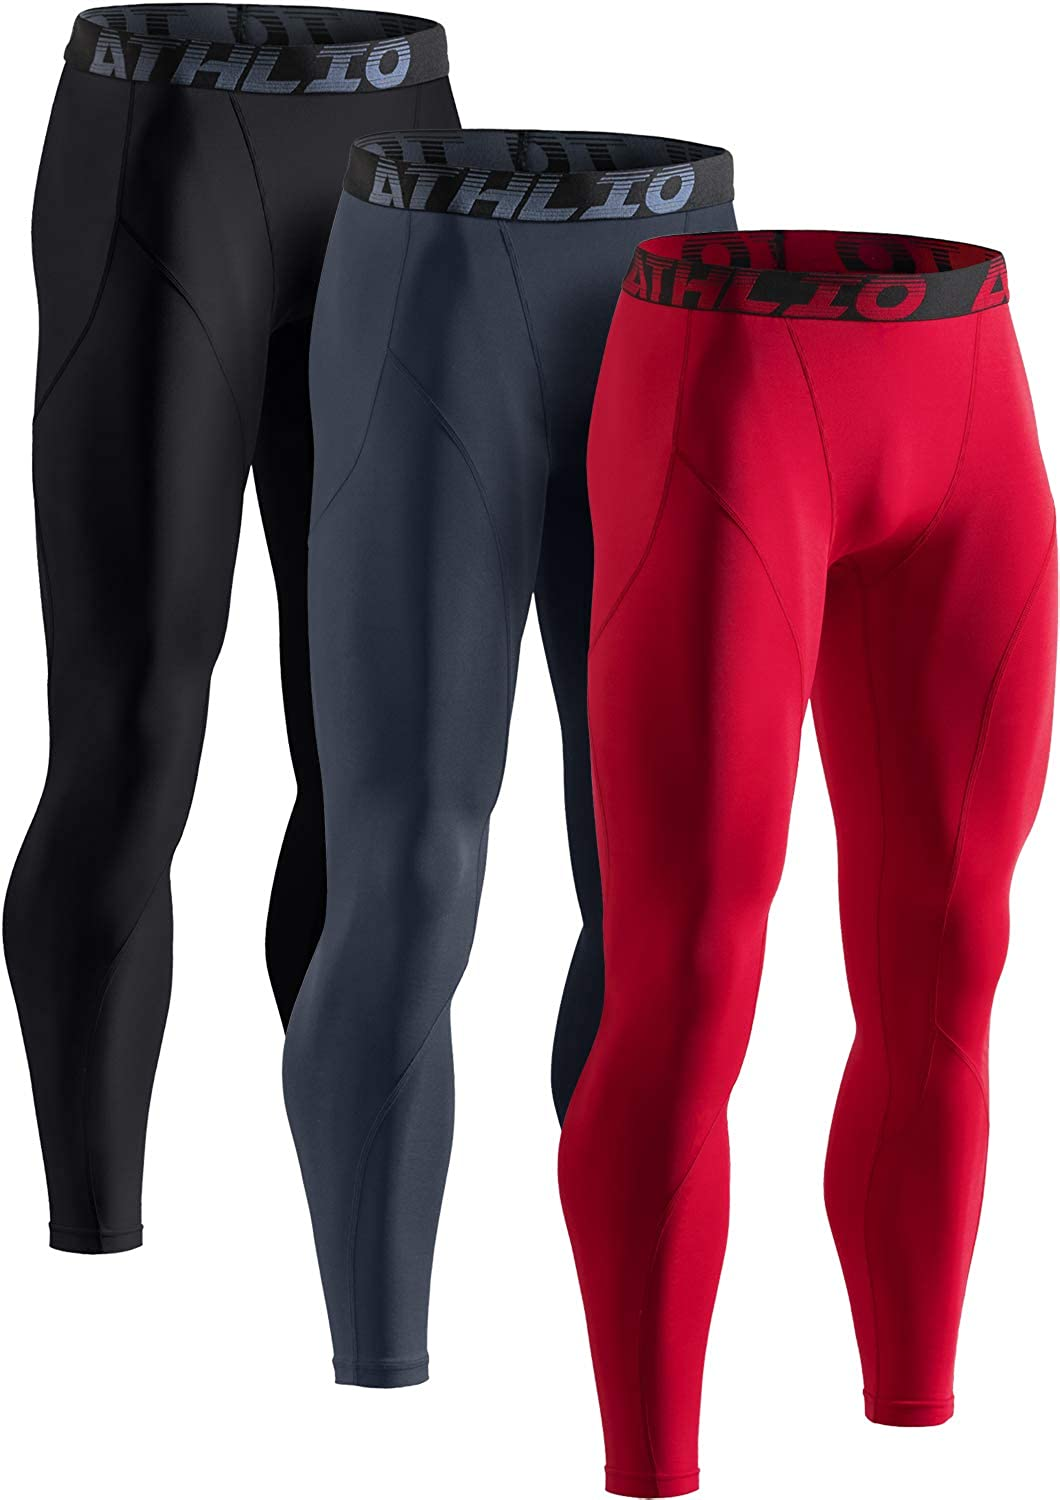 ATHLIO 1 or 3 Pack Men's Pants Dallas Mall Compression Max 41% OFF Thermal Run Athletic